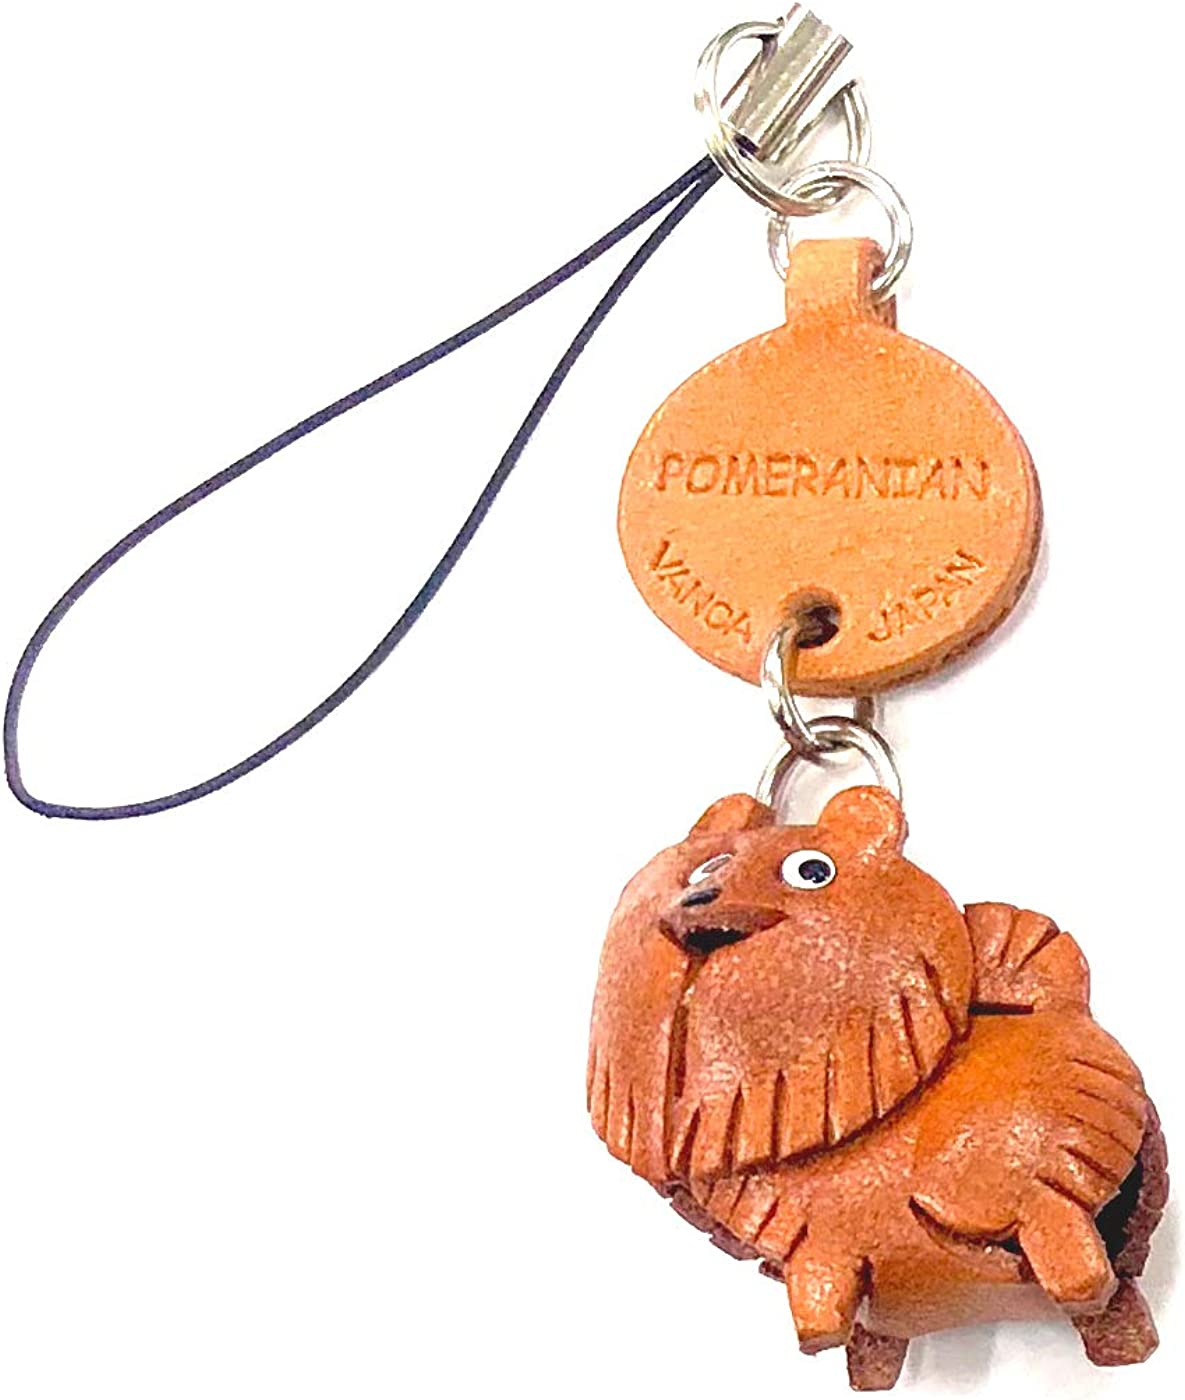 Pomeranian Leather Dog mobile CRAFT-Collec store Cellphone Charm VANCA 2021 spring and summer new